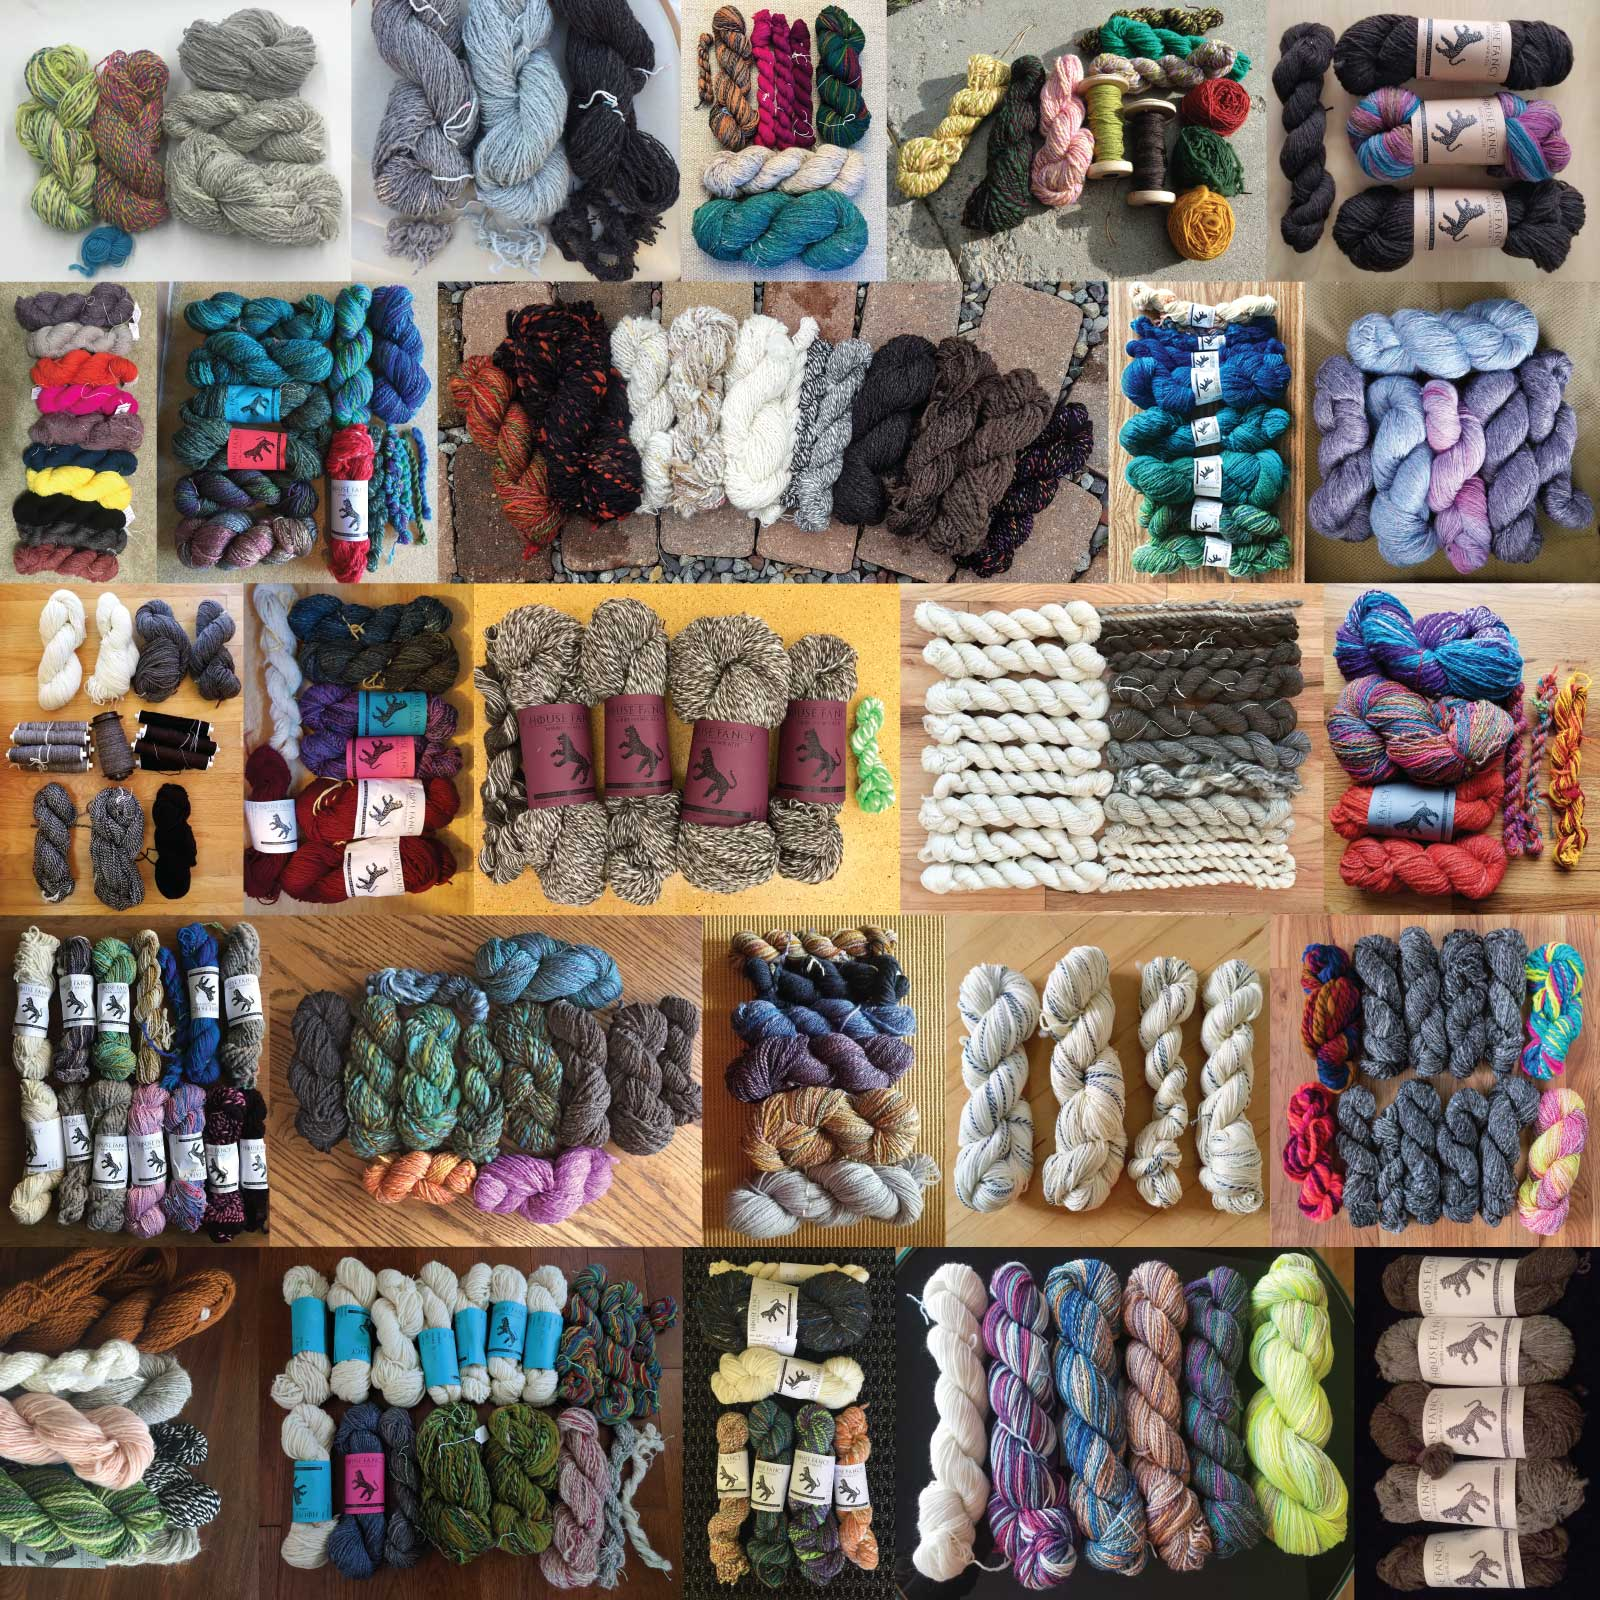 A collage of all Team Fancy Tiger's spinzilla yarn - 124648 yards!